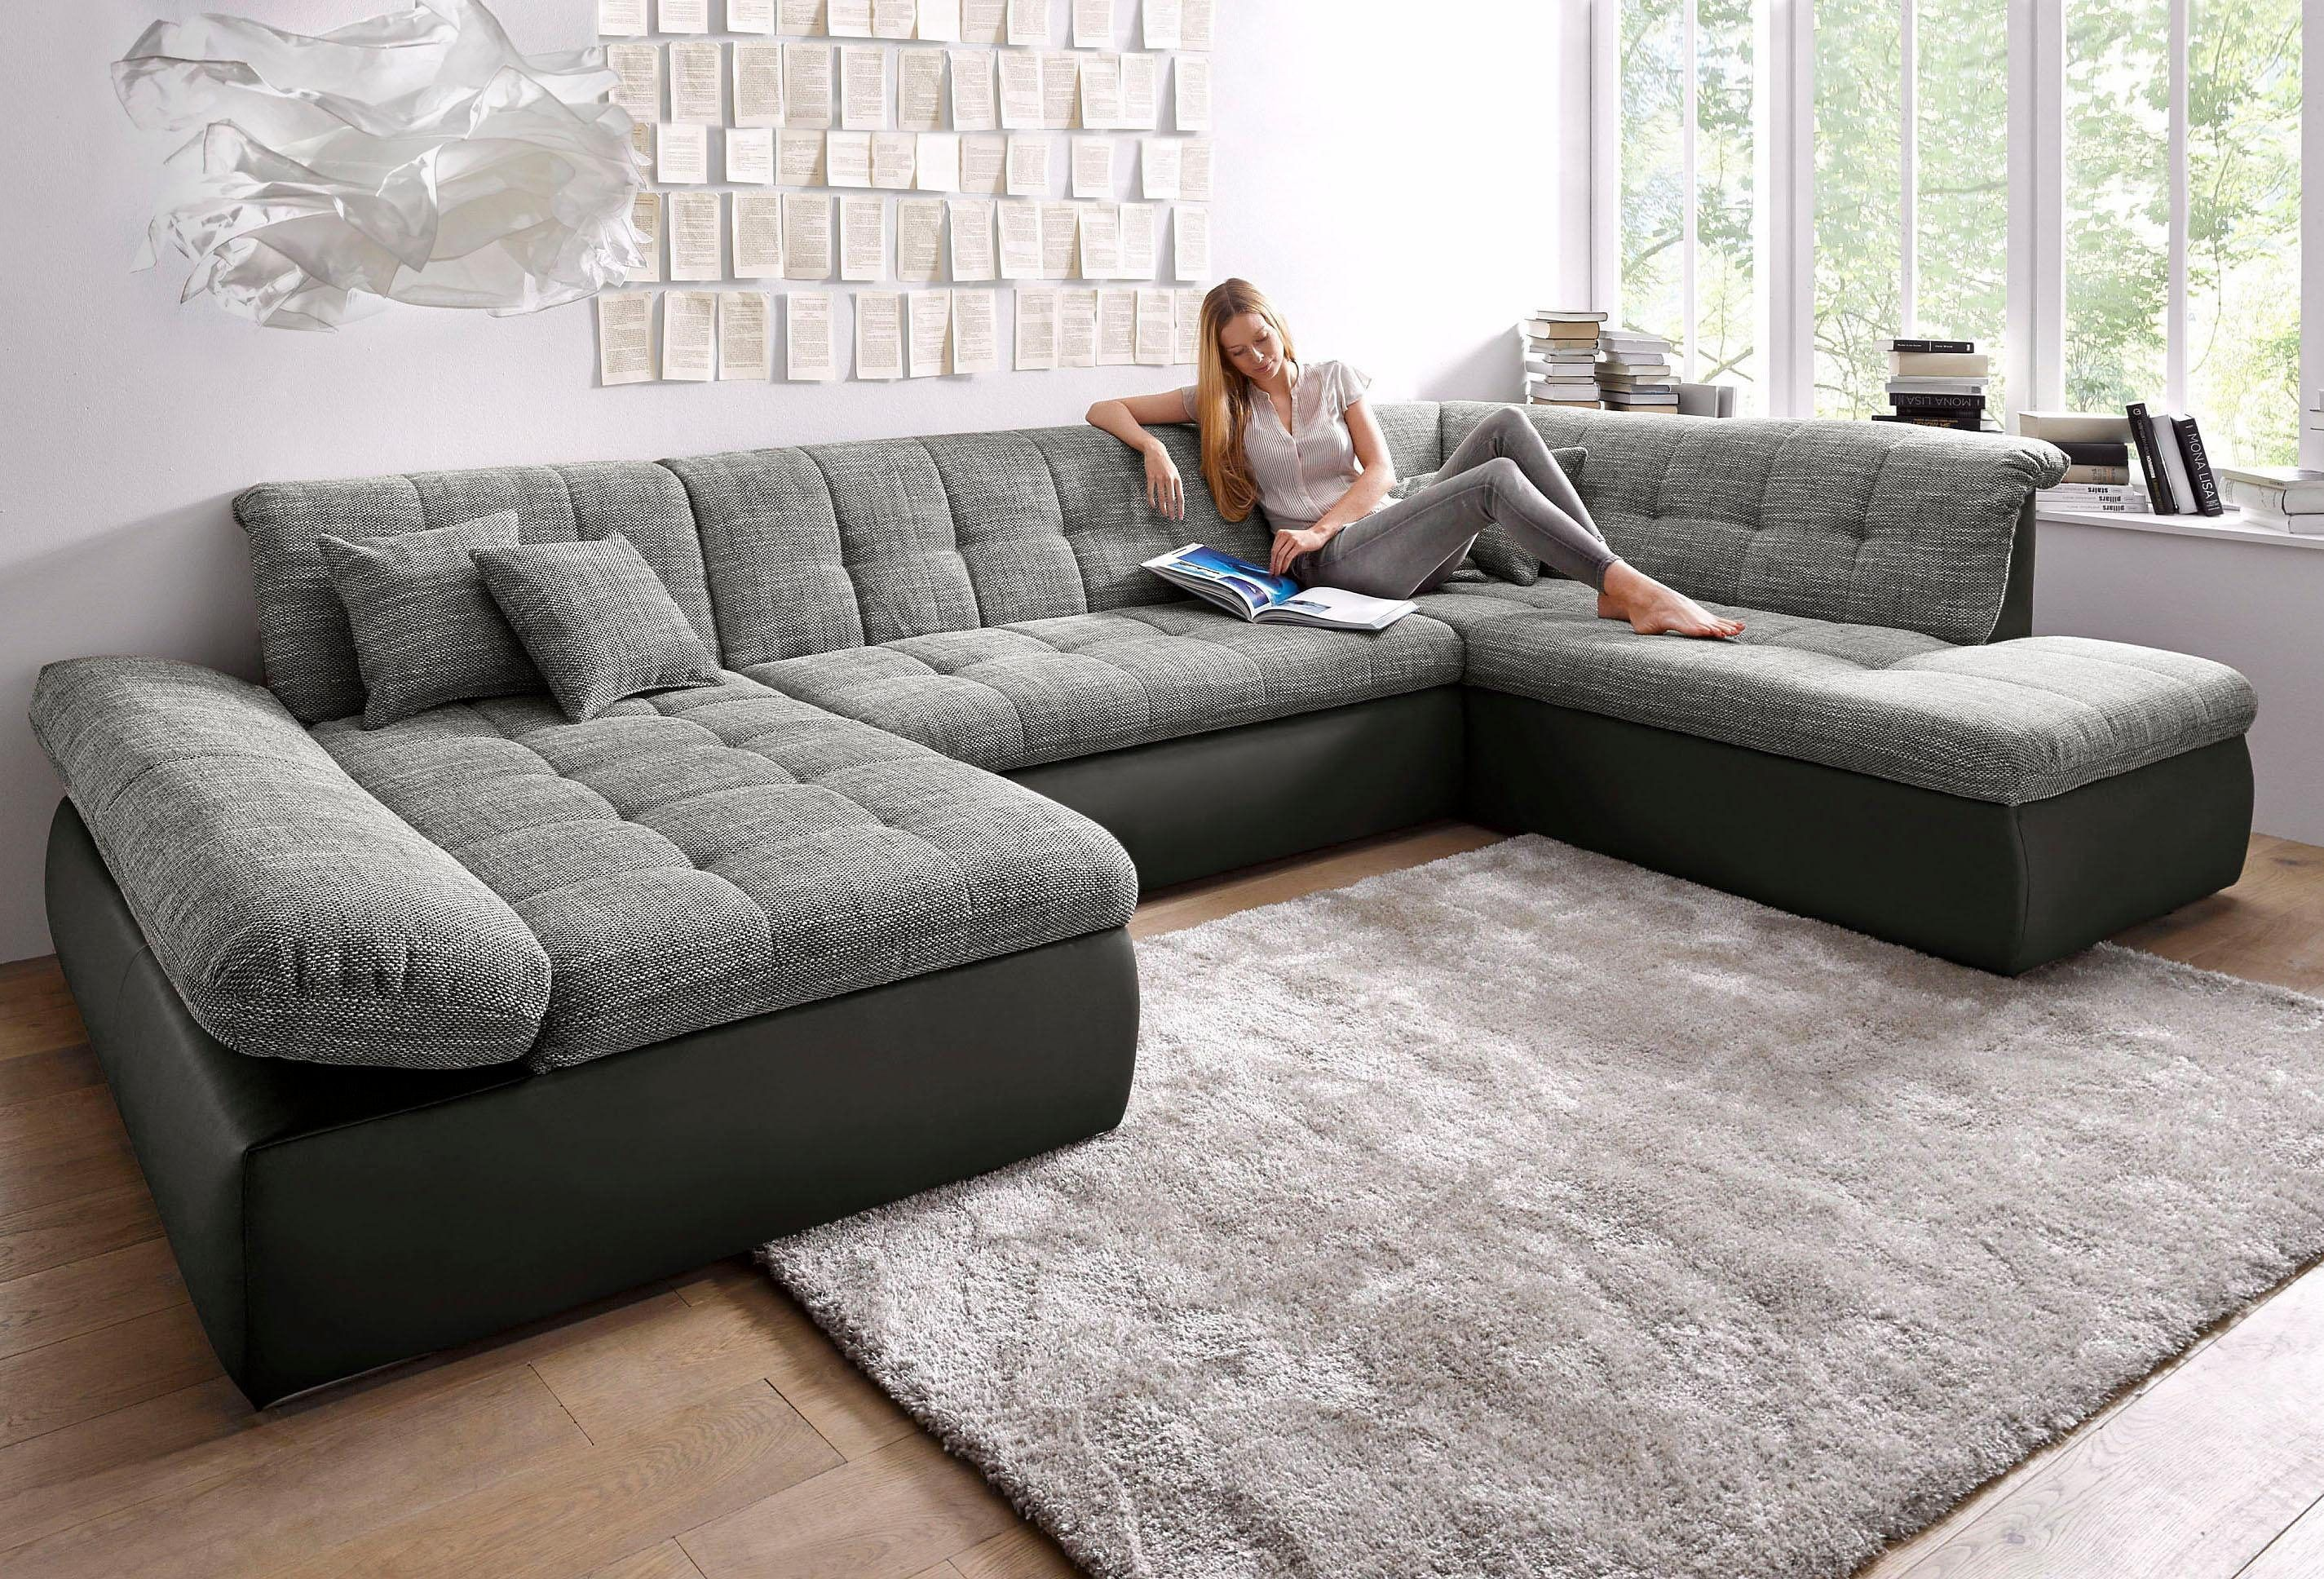 bruno remz sofa kaufen. Black Bedroom Furniture Sets. Home Design Ideas